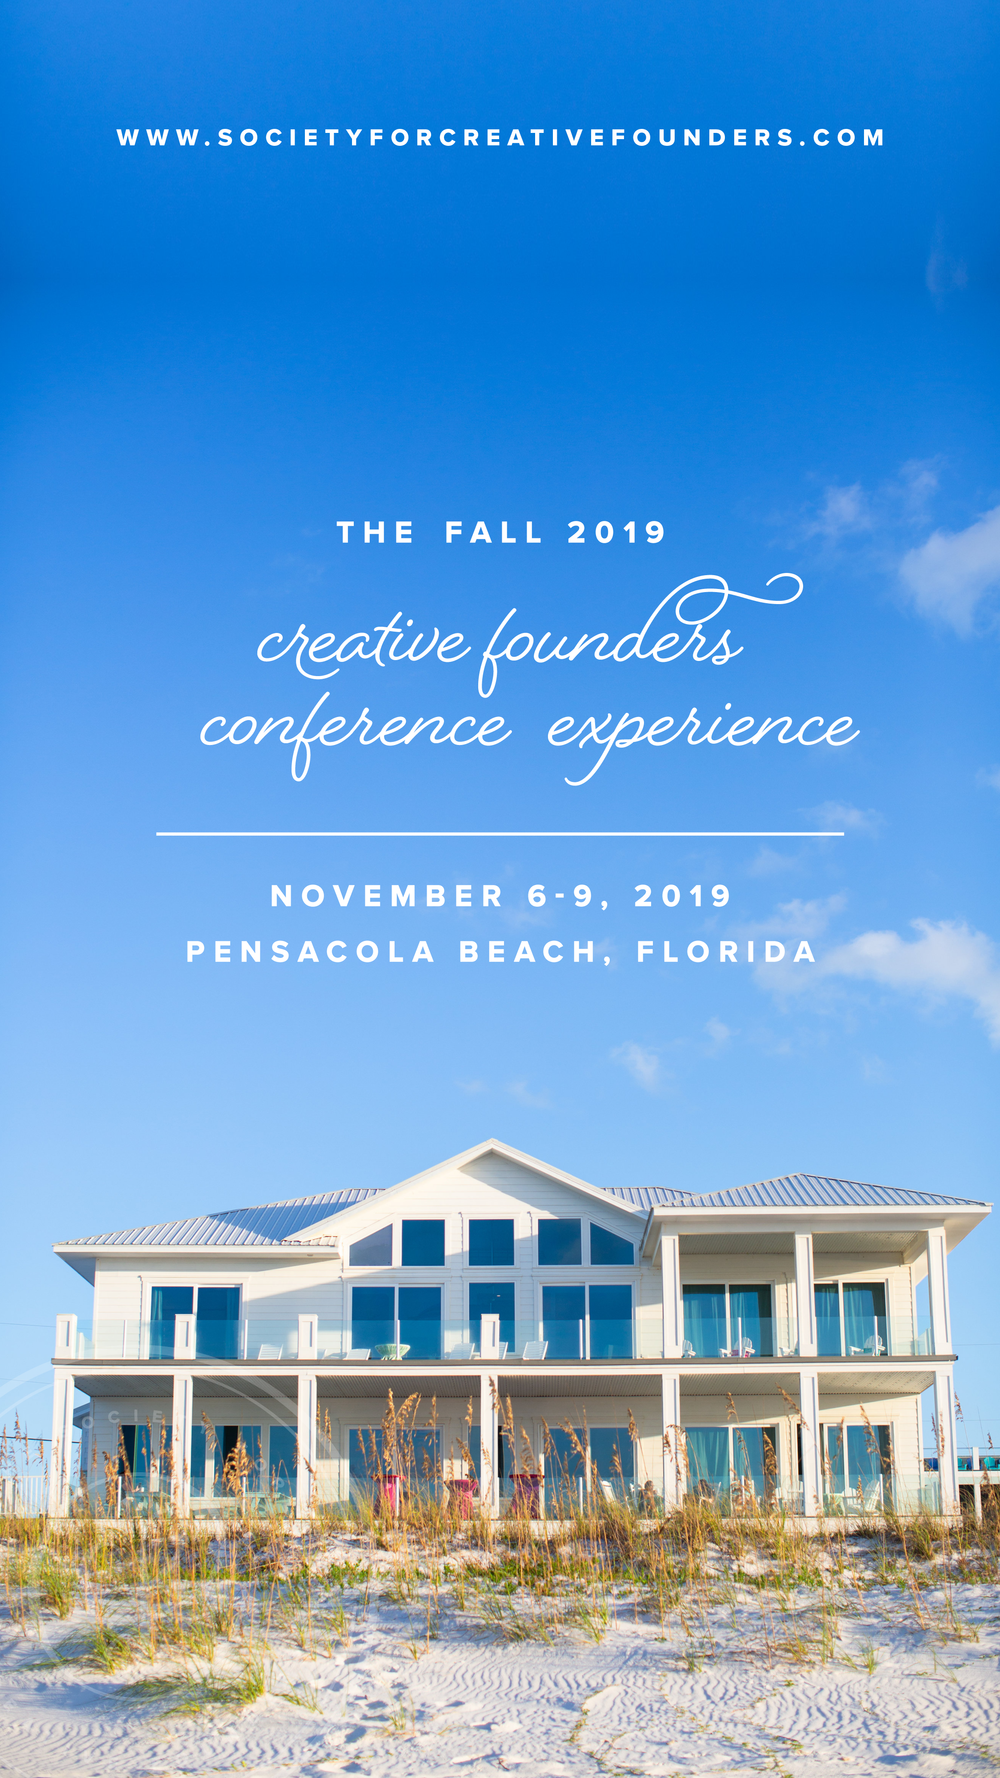 2019 Creative Founders Conference - November 6-9, 2019